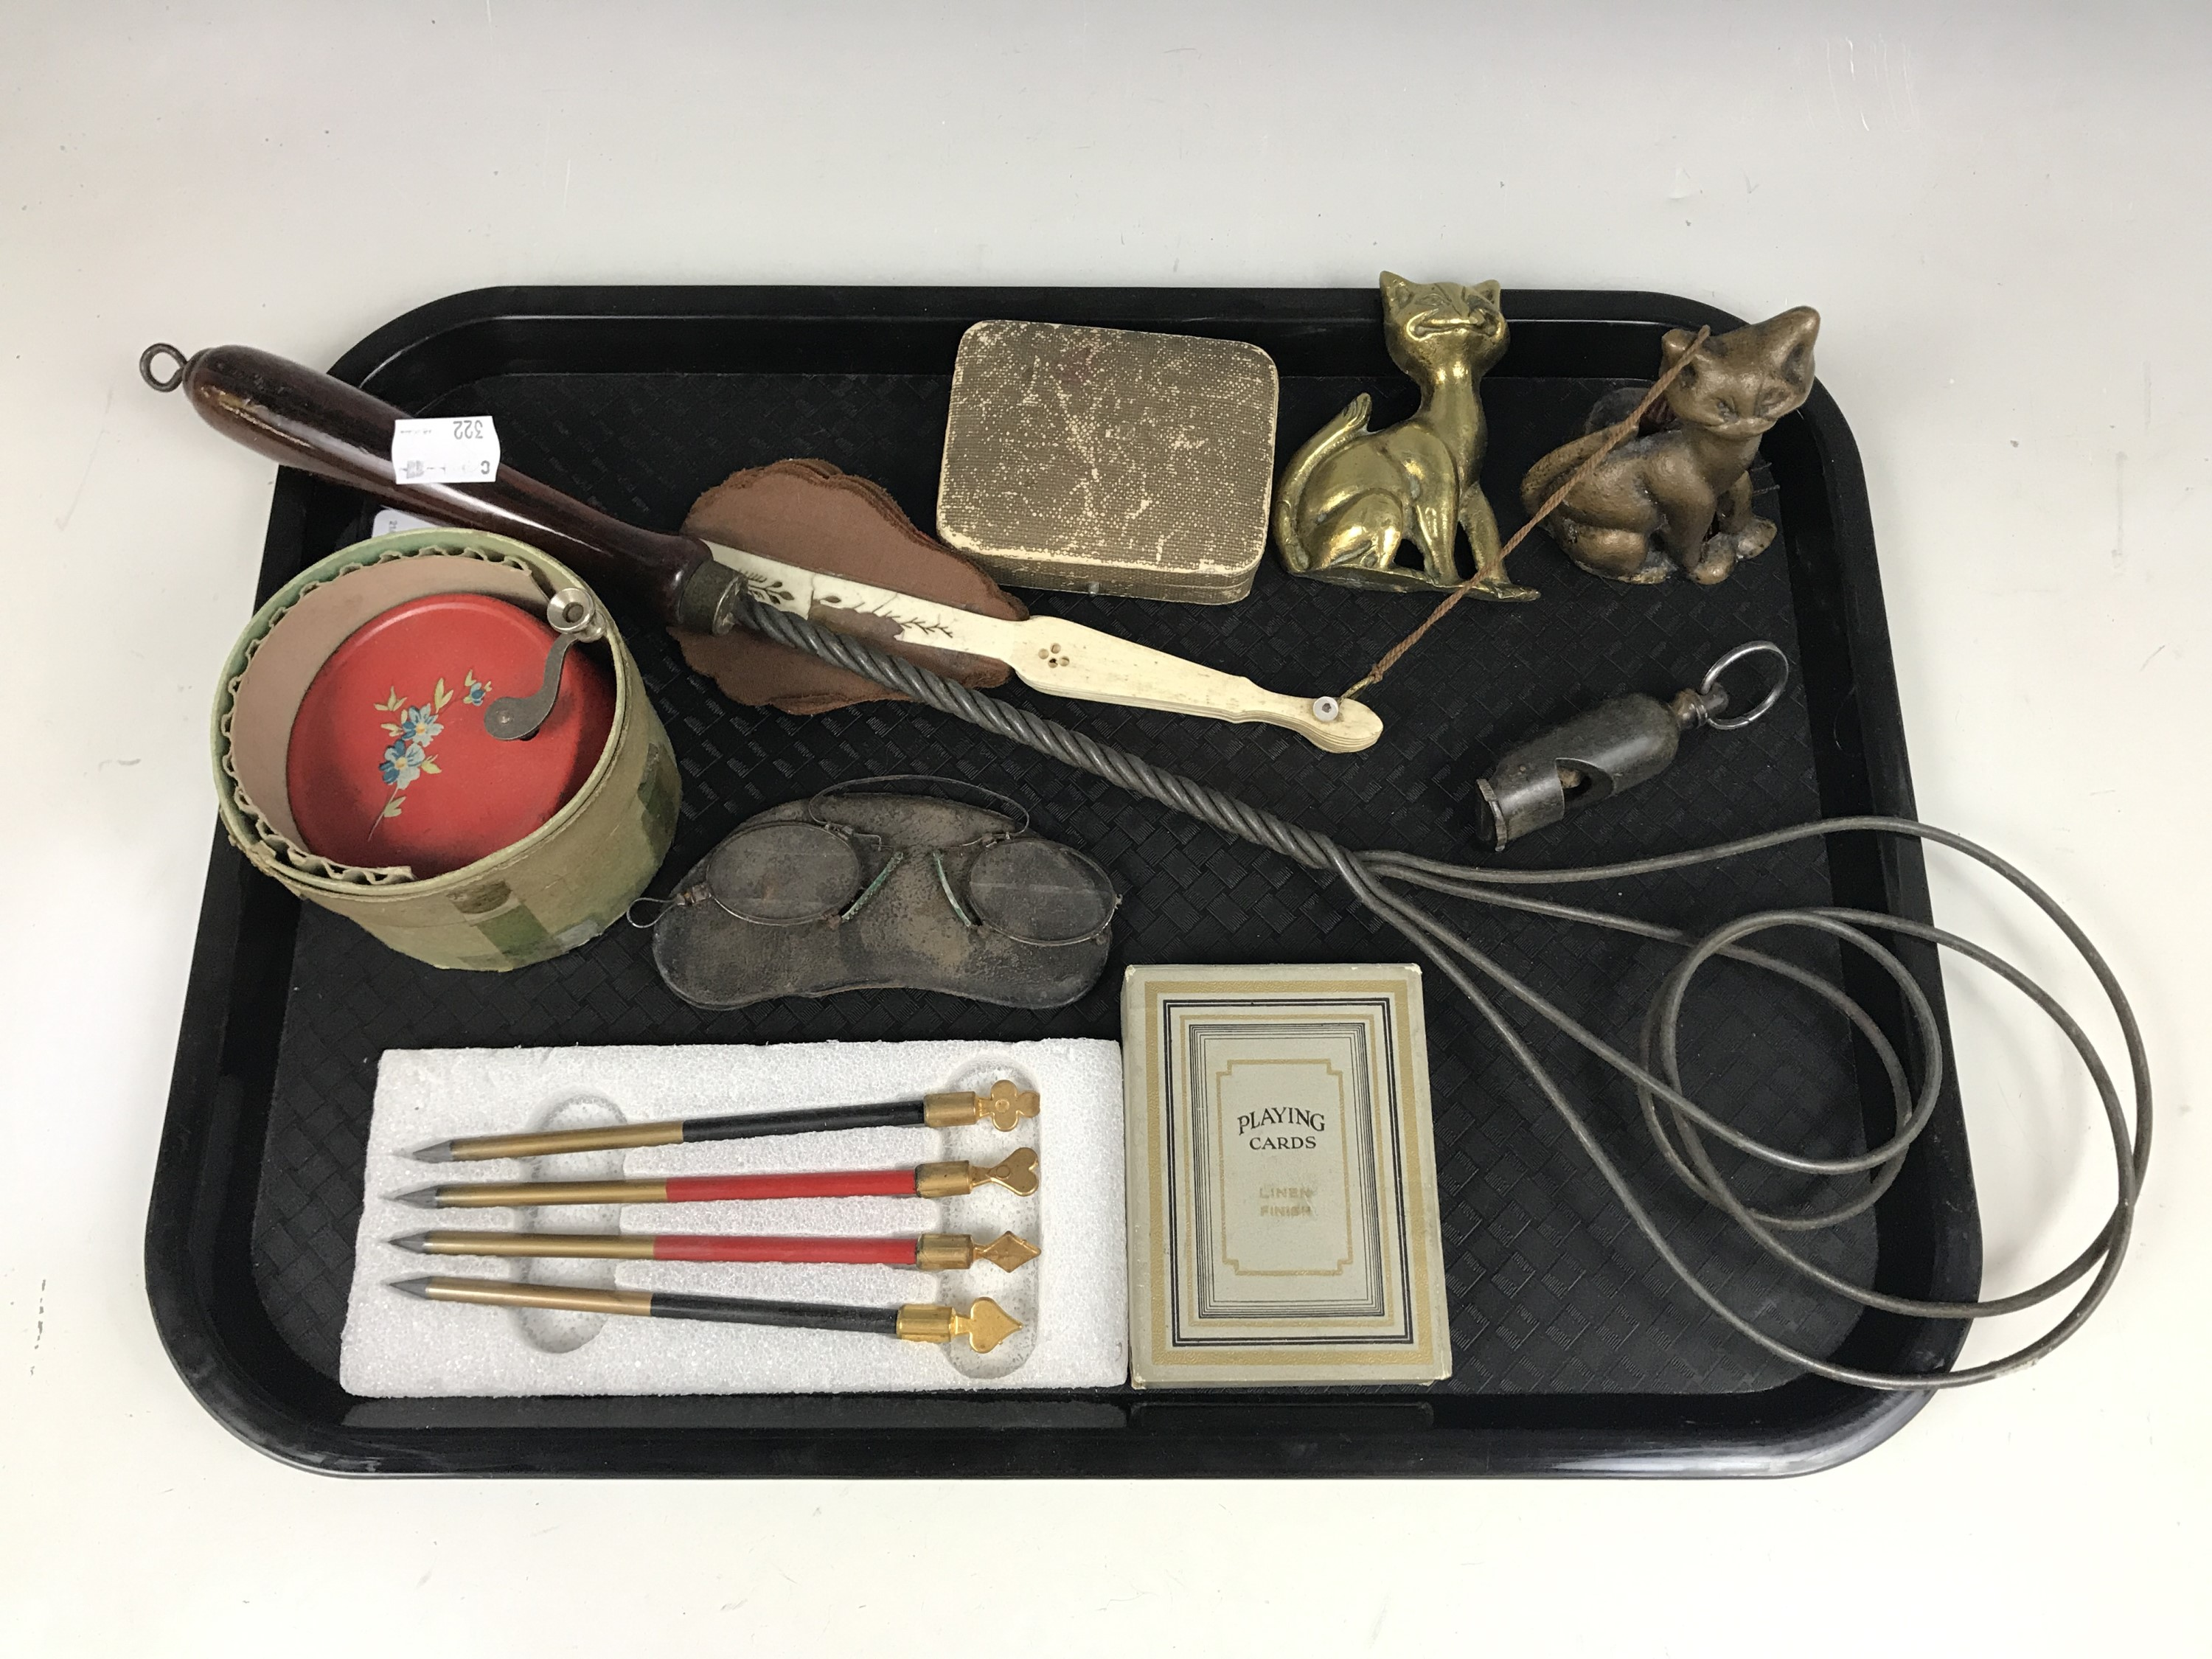 Lot 59 - Sundry collectors' items including a musical toy, pince-nez glasses, playing cards, a horn whistle